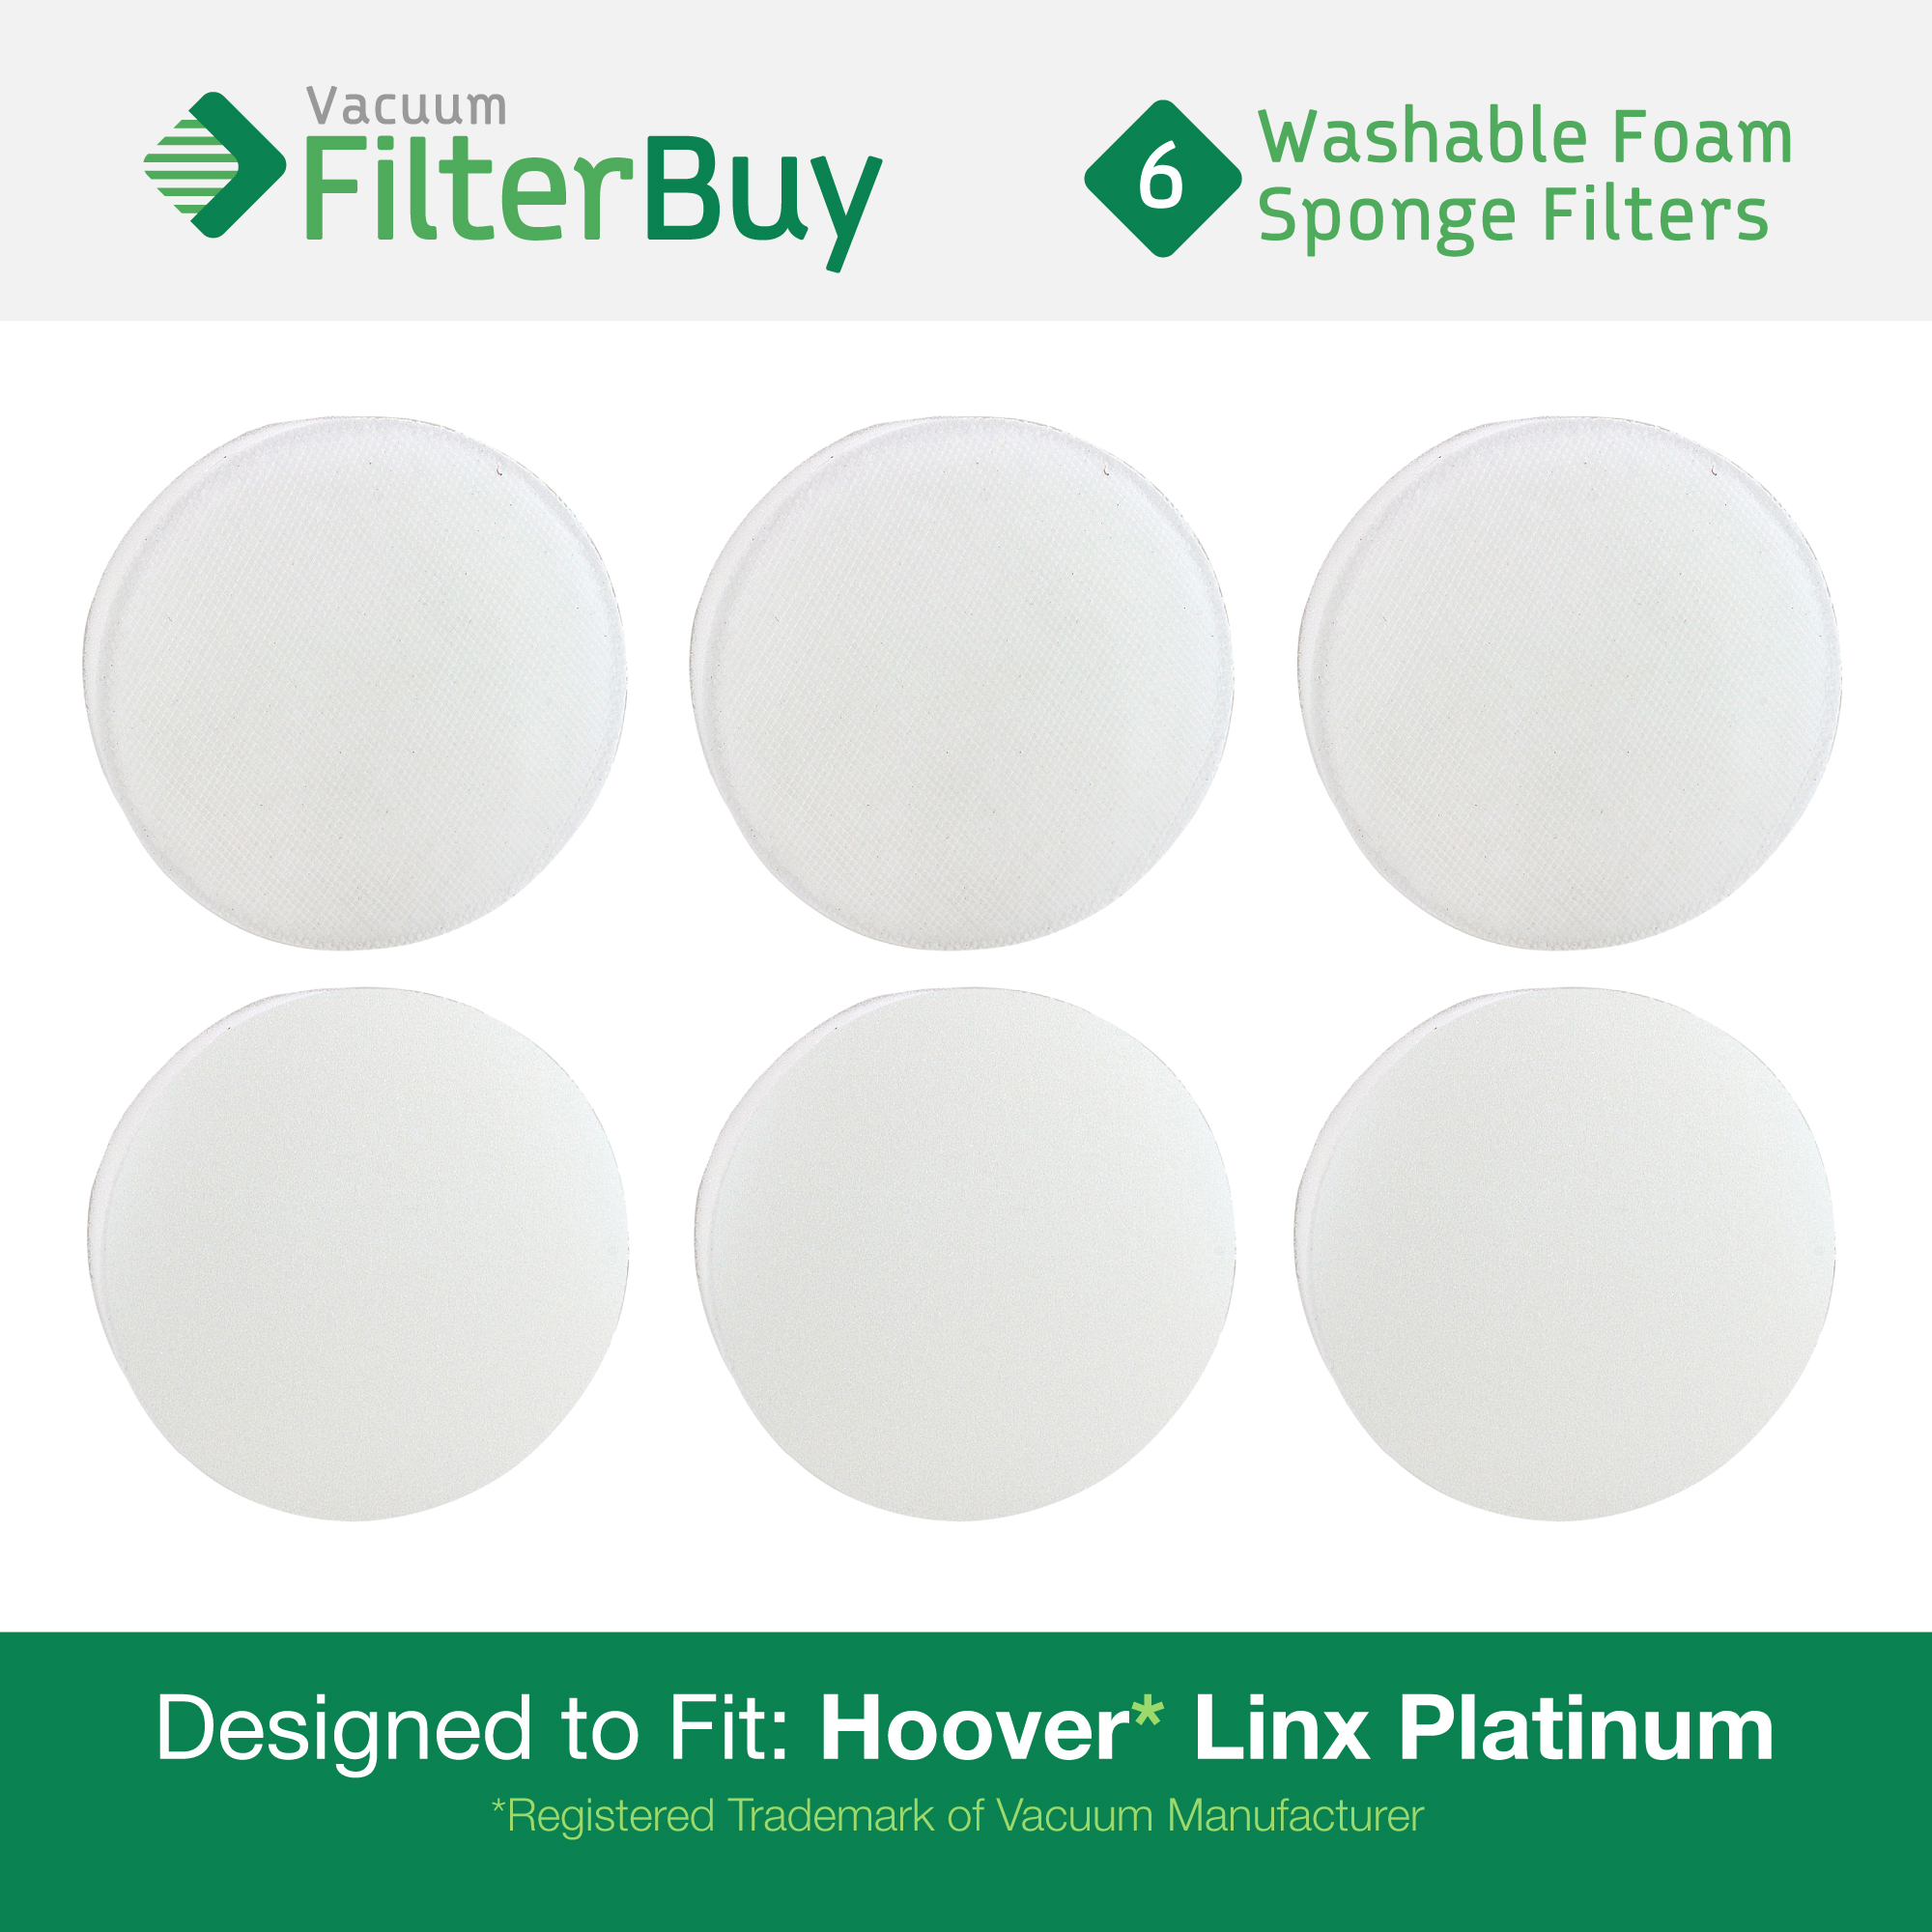 6 - Hoover Linx Washable & Reusable Foam Sponge Filters. Designed by FilterBuy to Replace Hoover Platinum Linx #'s 902185003, 001331007, 562161003, & 410044001.